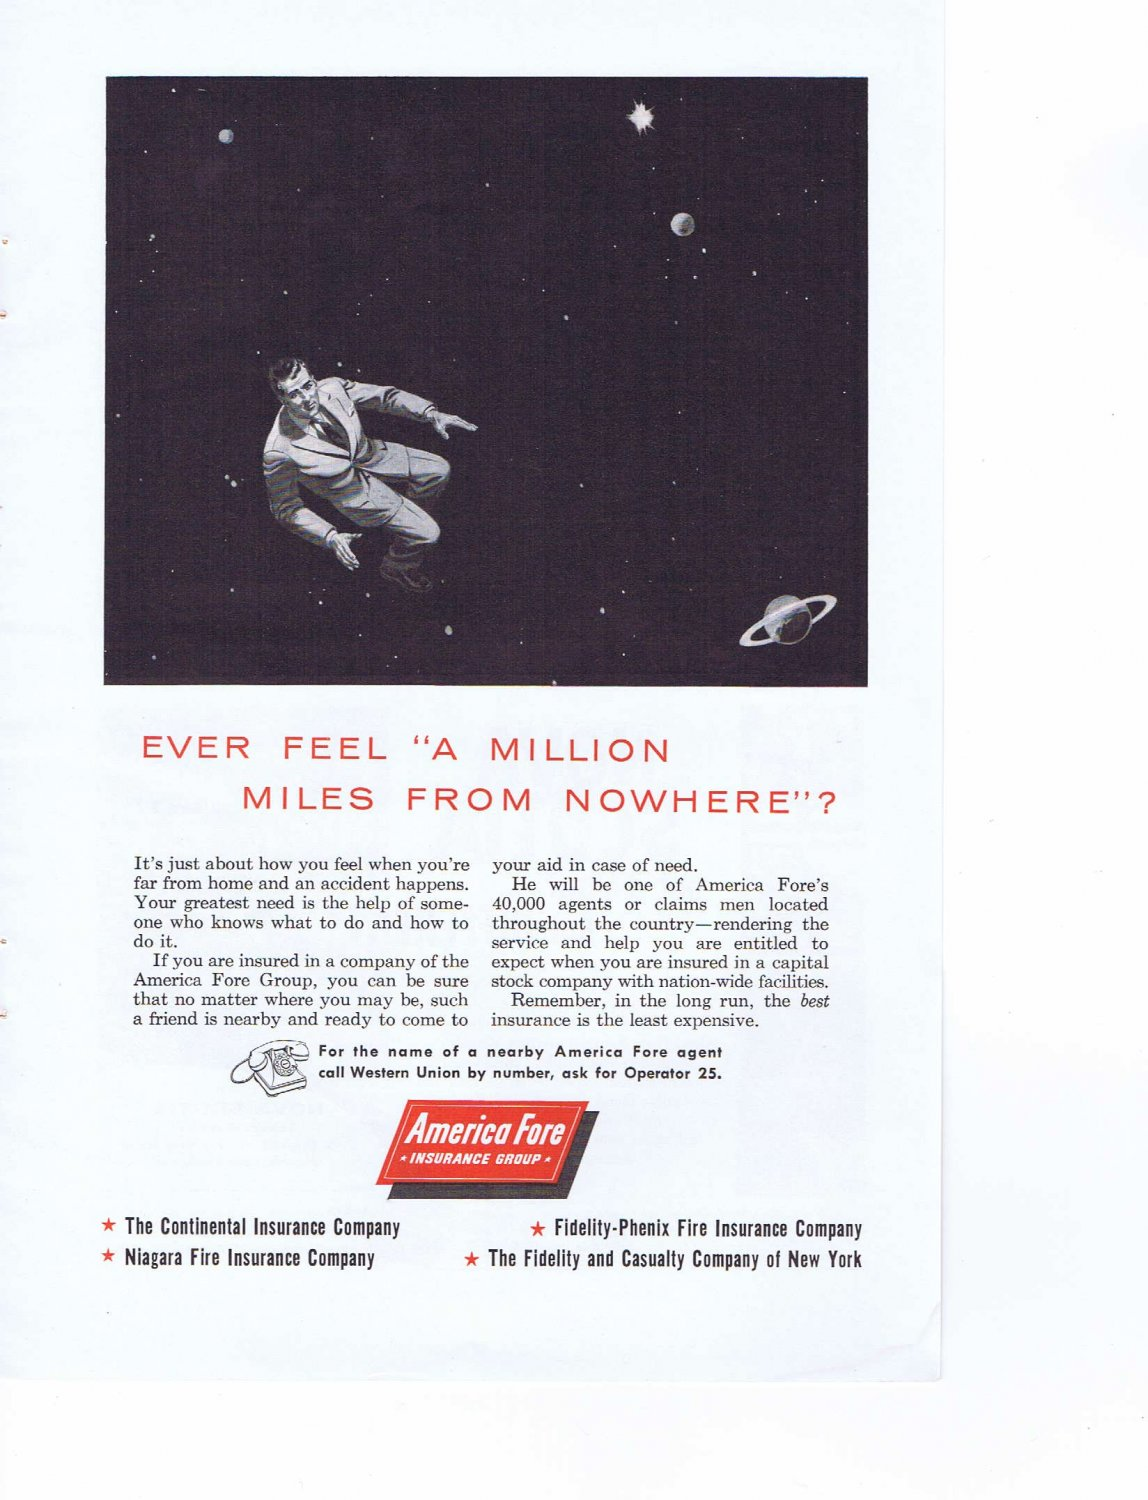 1957 A Million Miles From Nowhere American Fore Insurance Original Vintage Ad